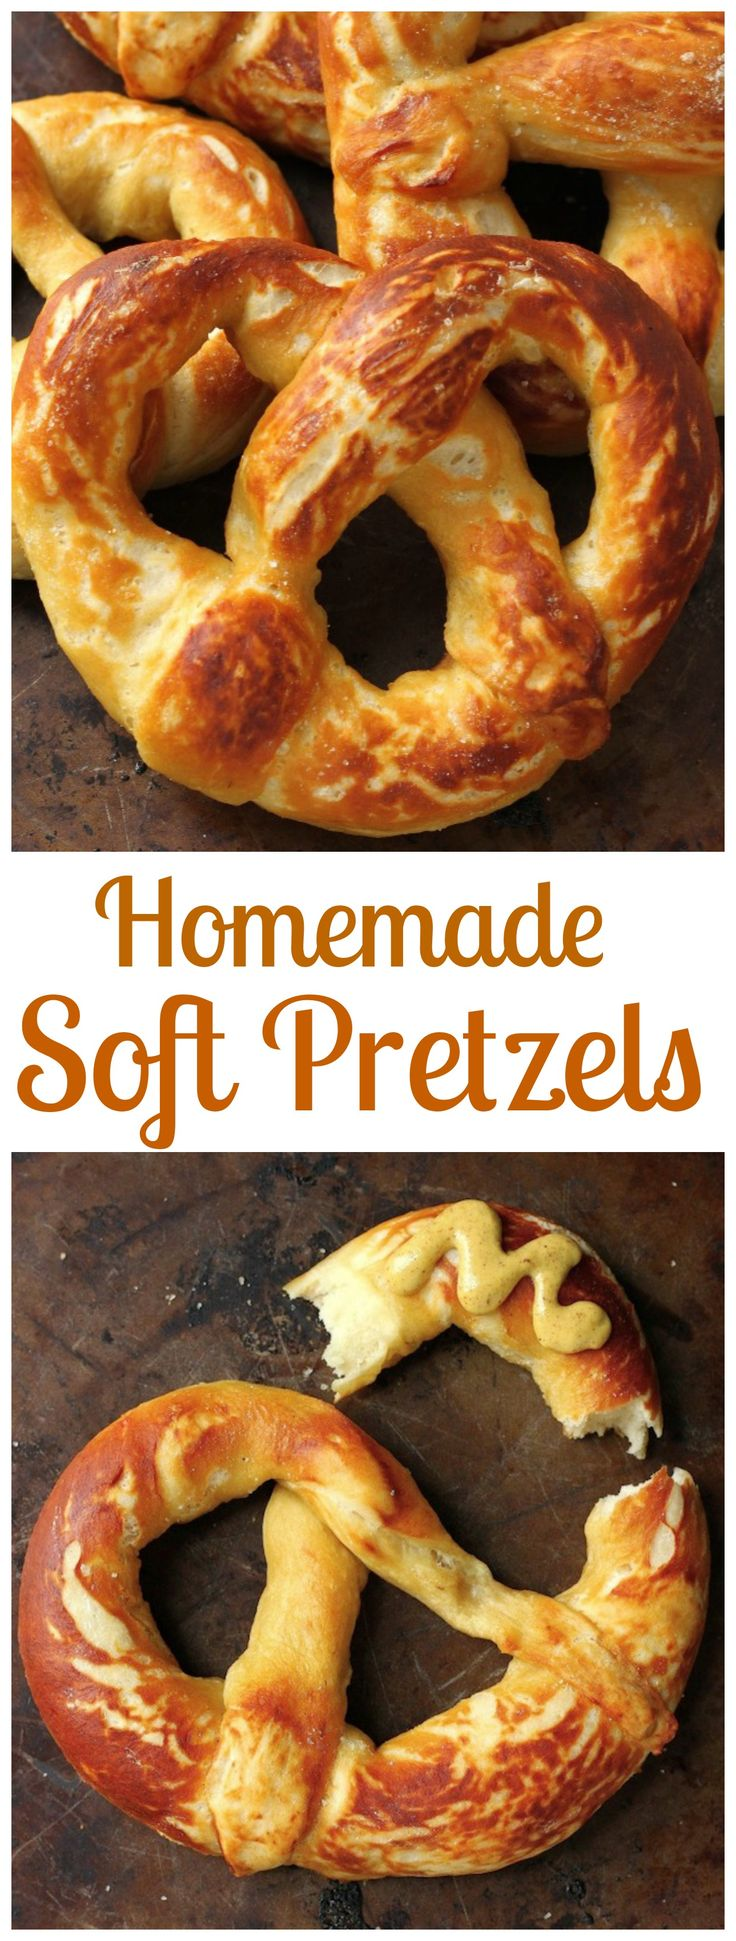 Soft pretzels, Homemade soft pretzels and Pretzels on Pinterest